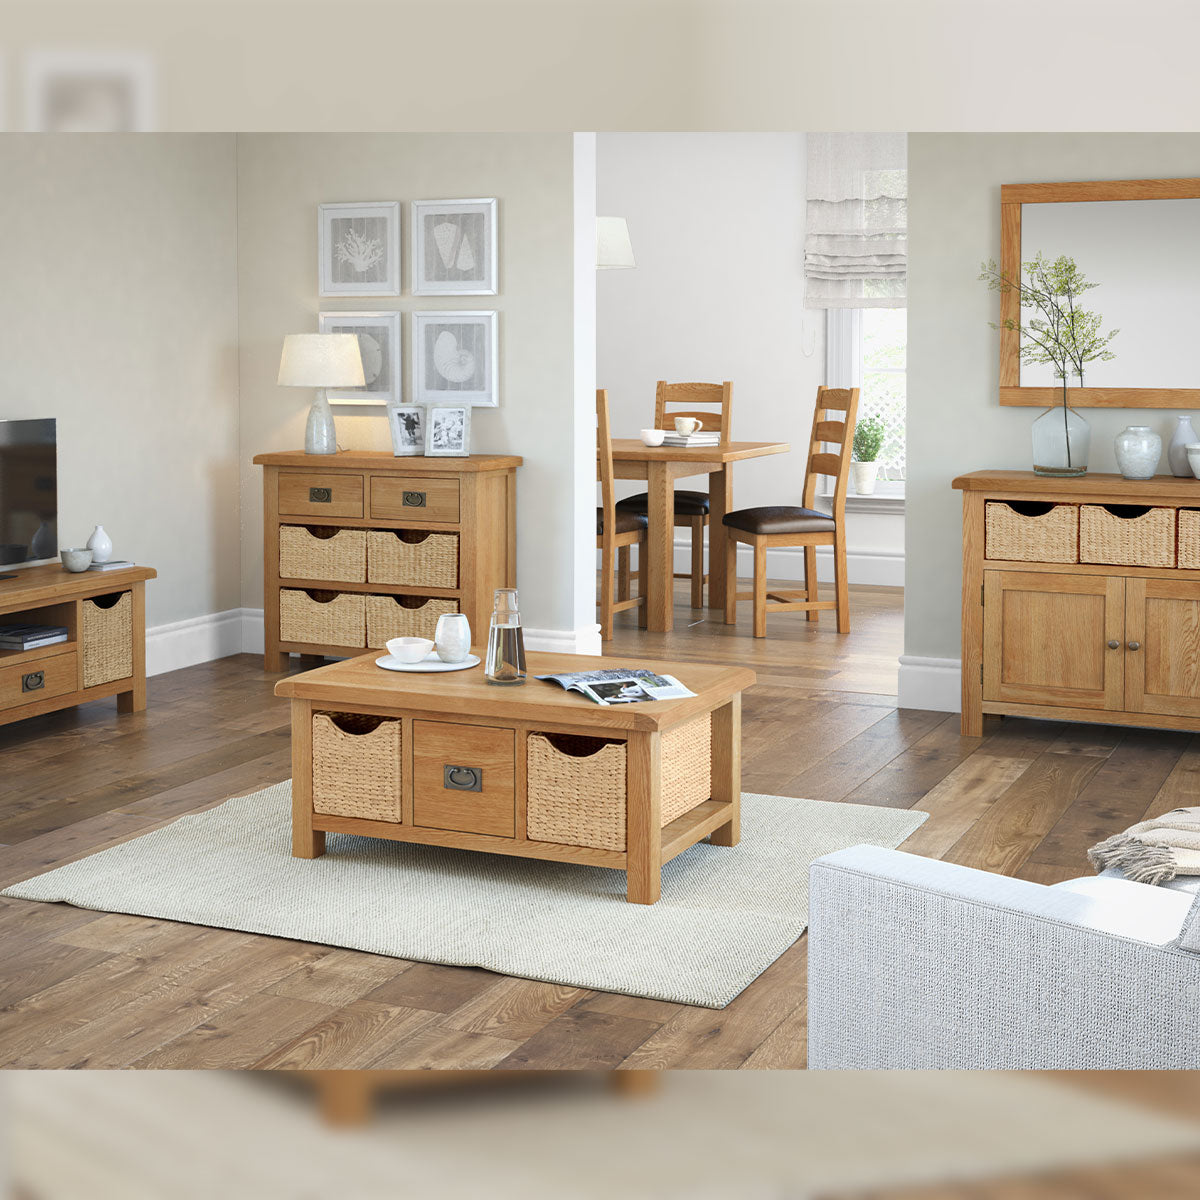 Salisbury Large Coffee Table With Baskets